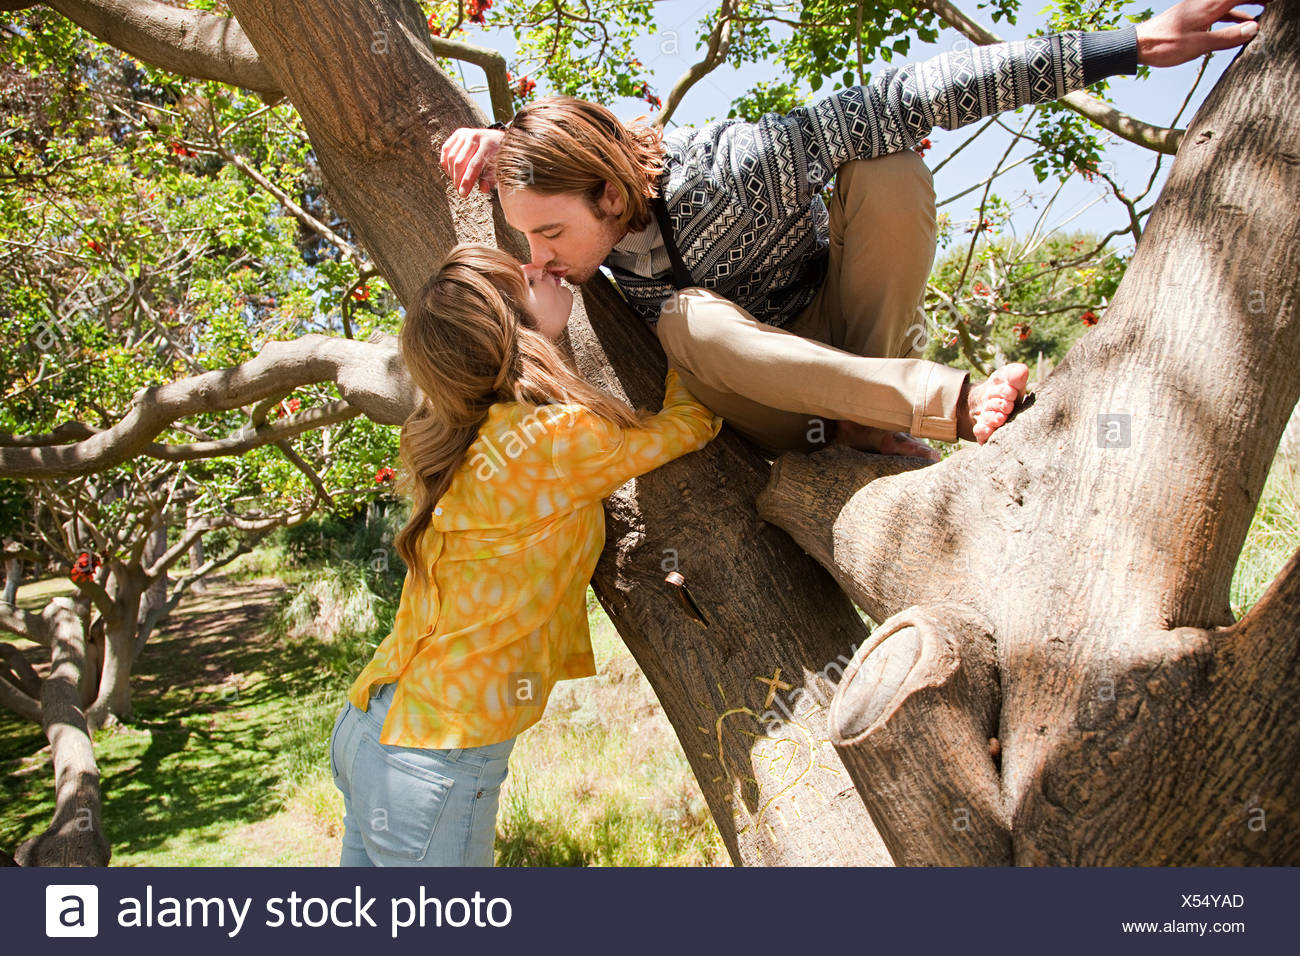 Man in tree leaning to kiss girlfriend - Stock Image